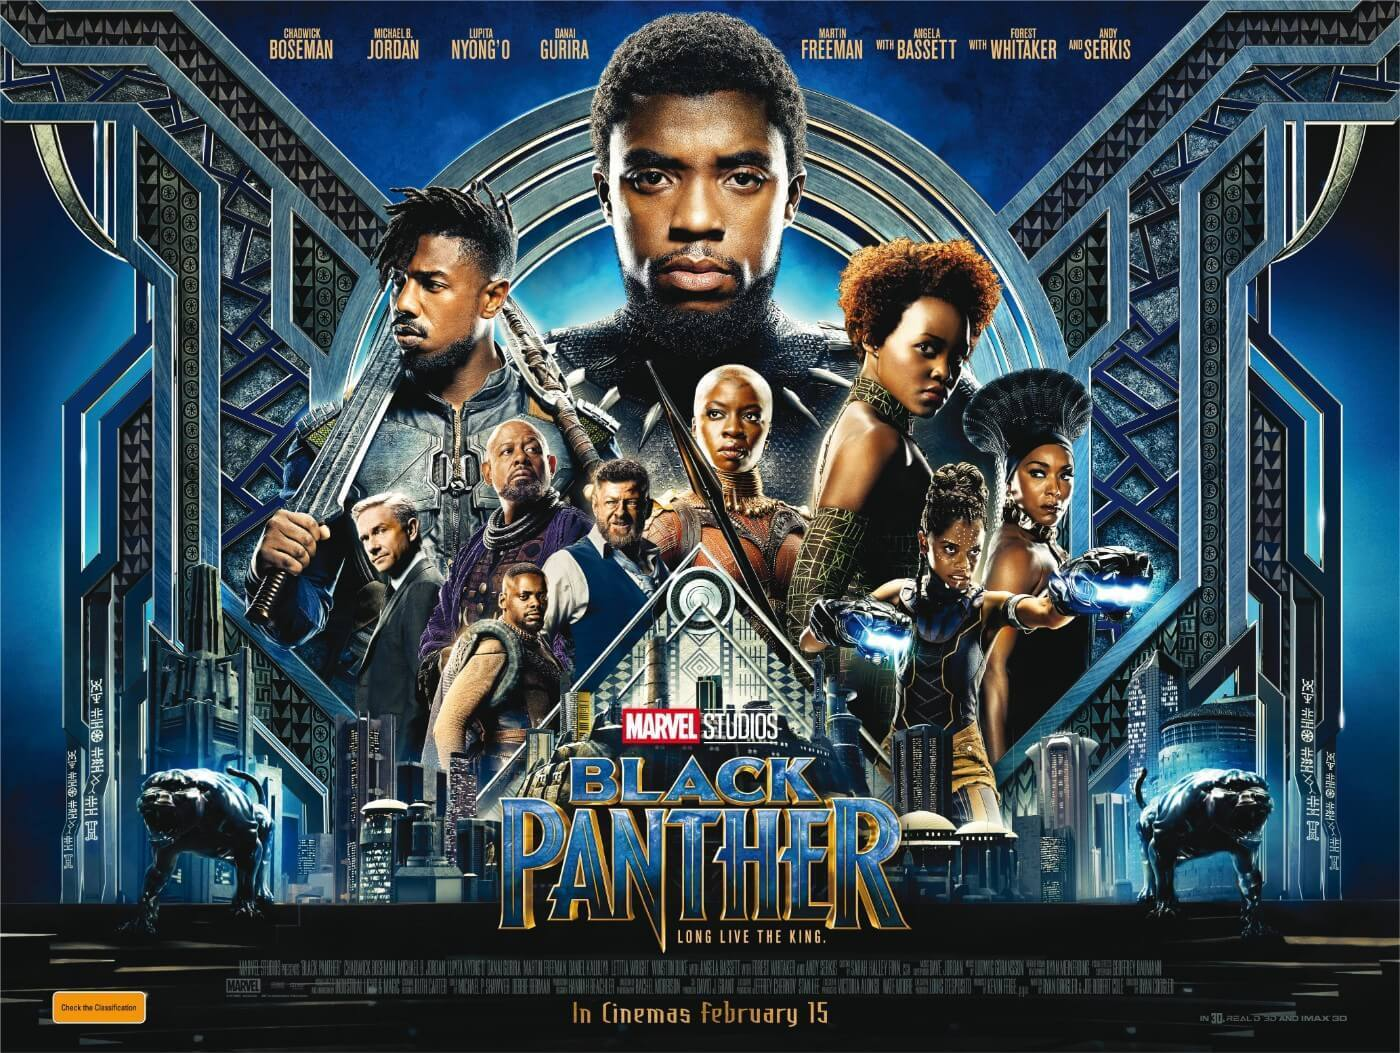 The promotional poster for last year's Blockbuster film Black Panther.